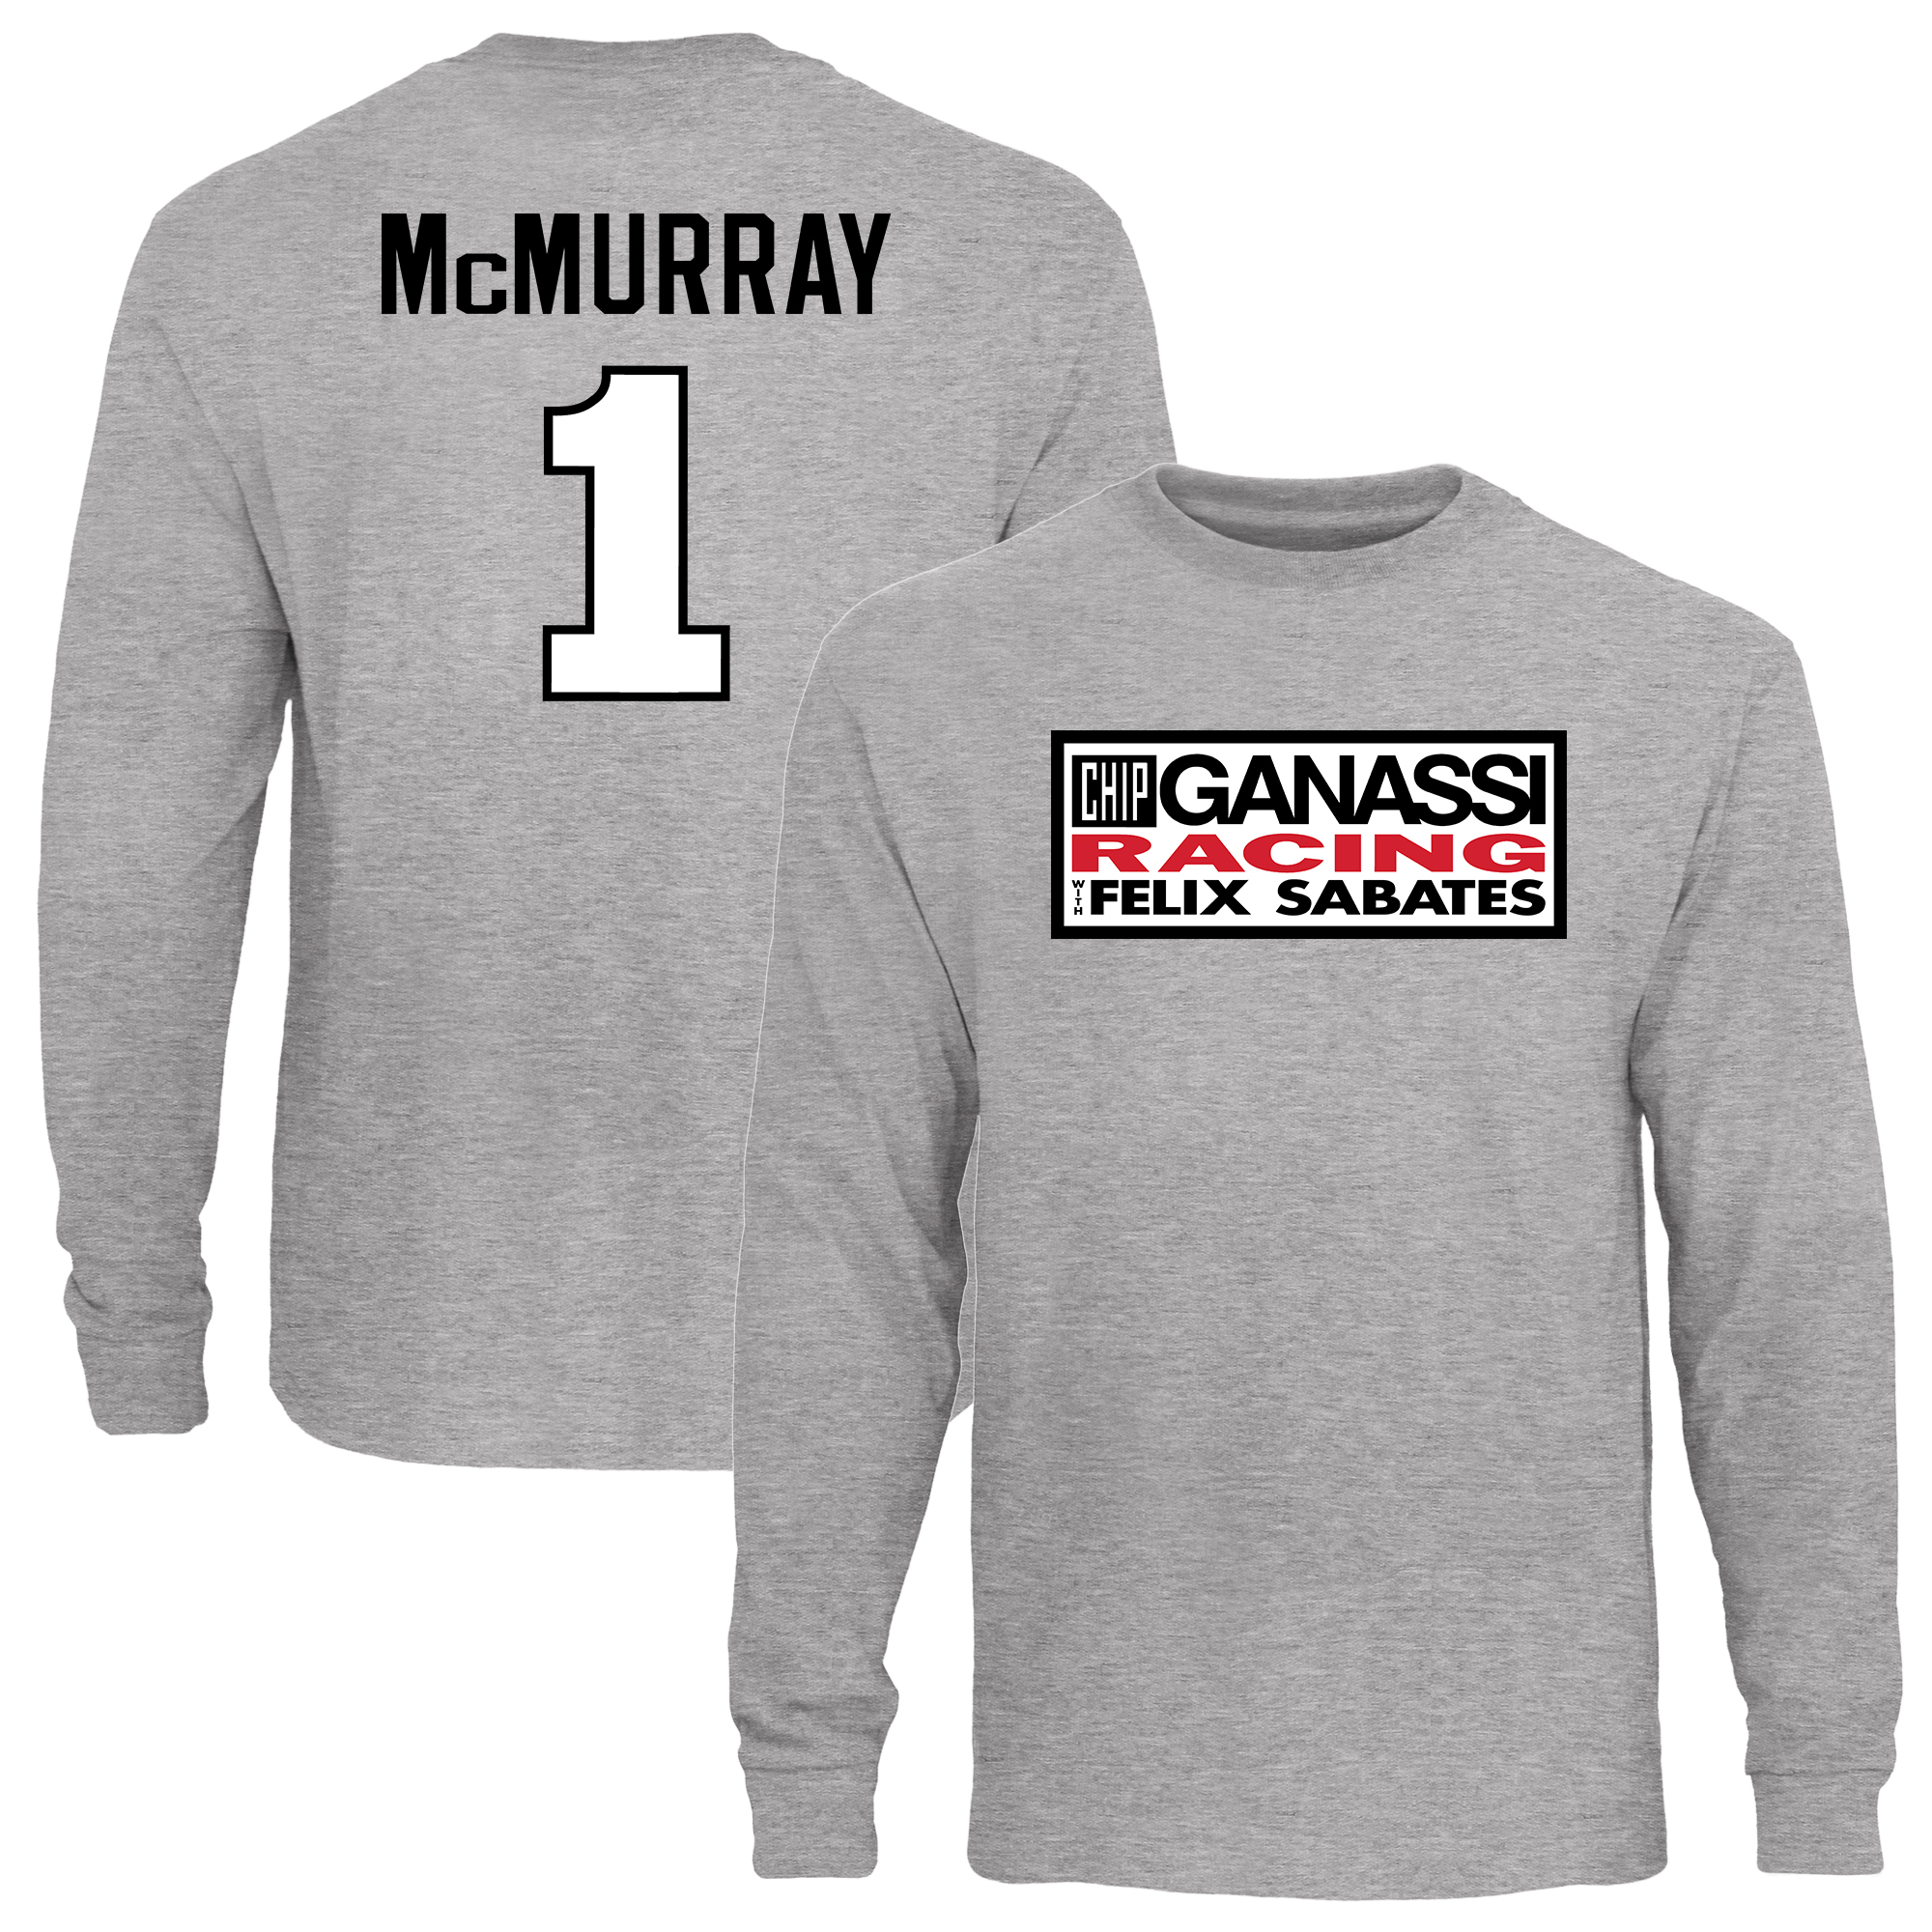 Jamie McMurray Driver Name & Number Long Sleeve T-Shirt - Ash